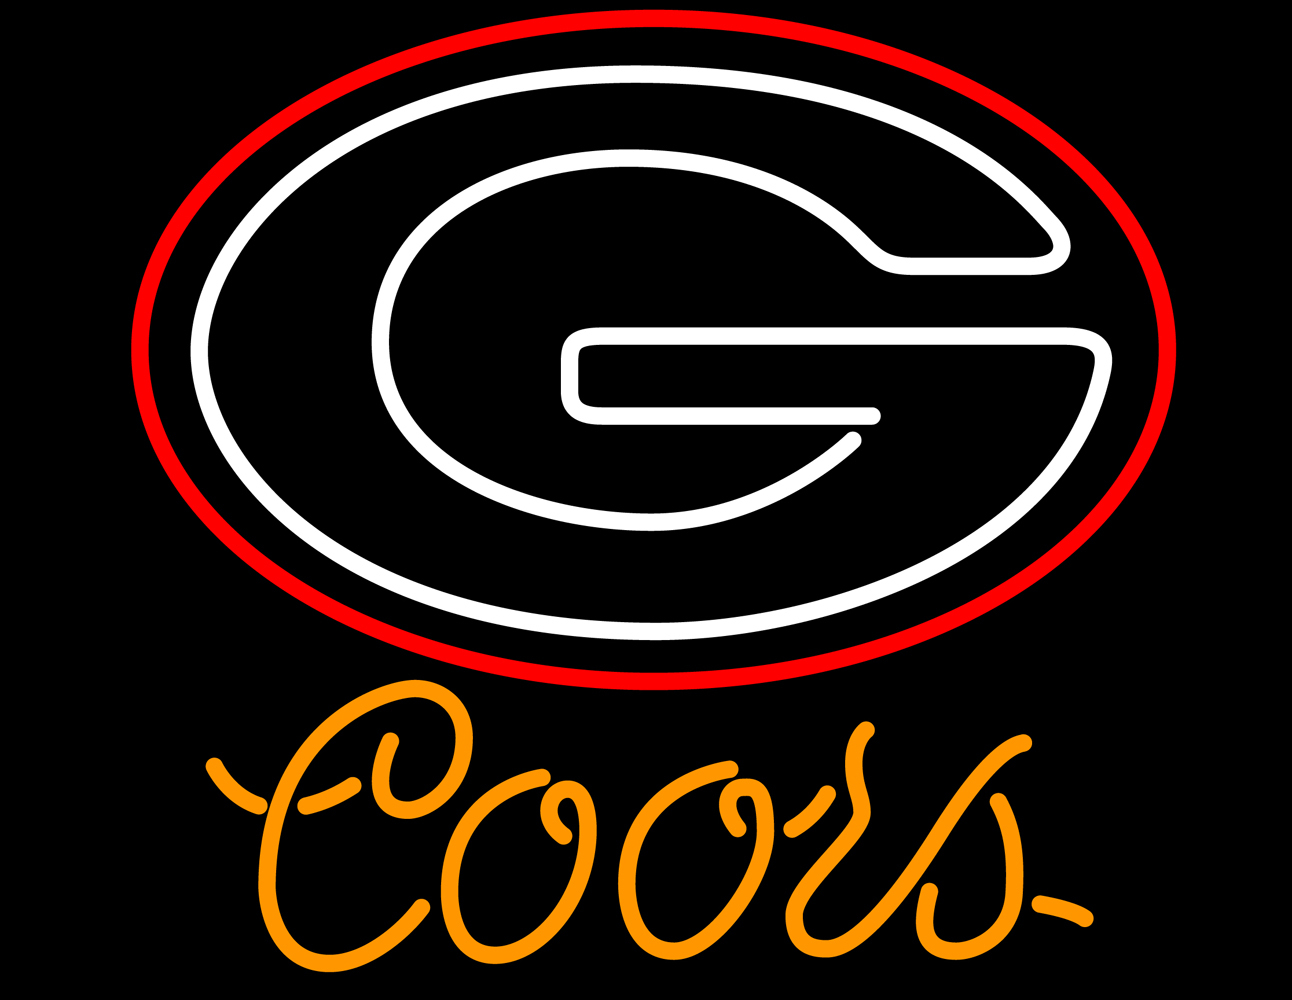 Coors NCAA University of Georgia Neon Sign image 1